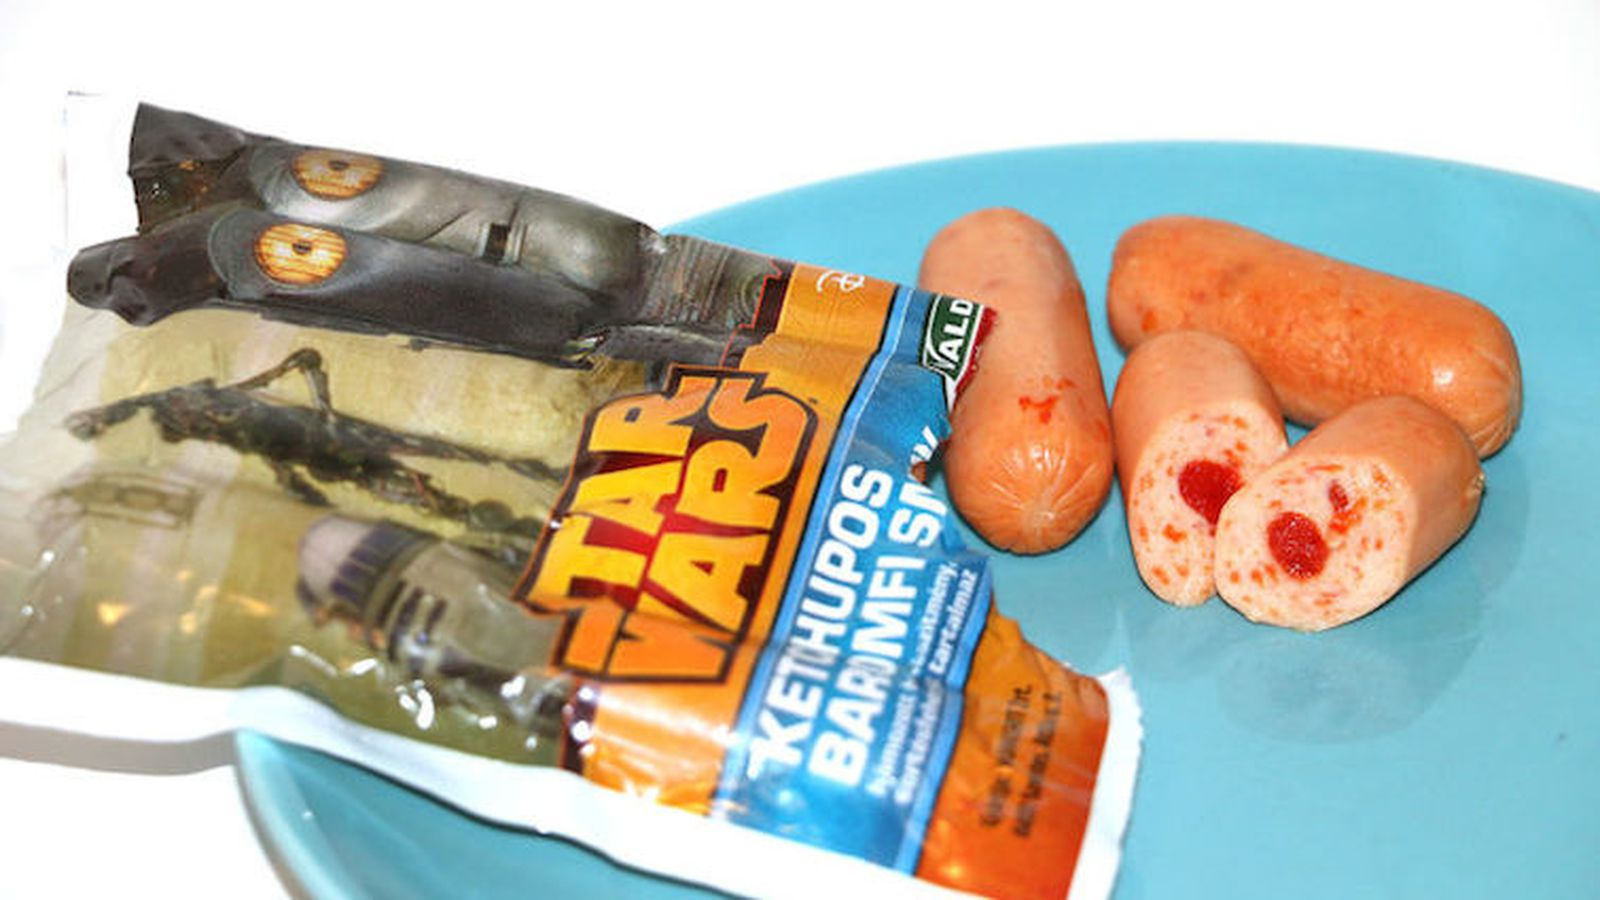 Star Wars Cooking Supplies These 11 Star Wars Foods Should Not Exist Eater